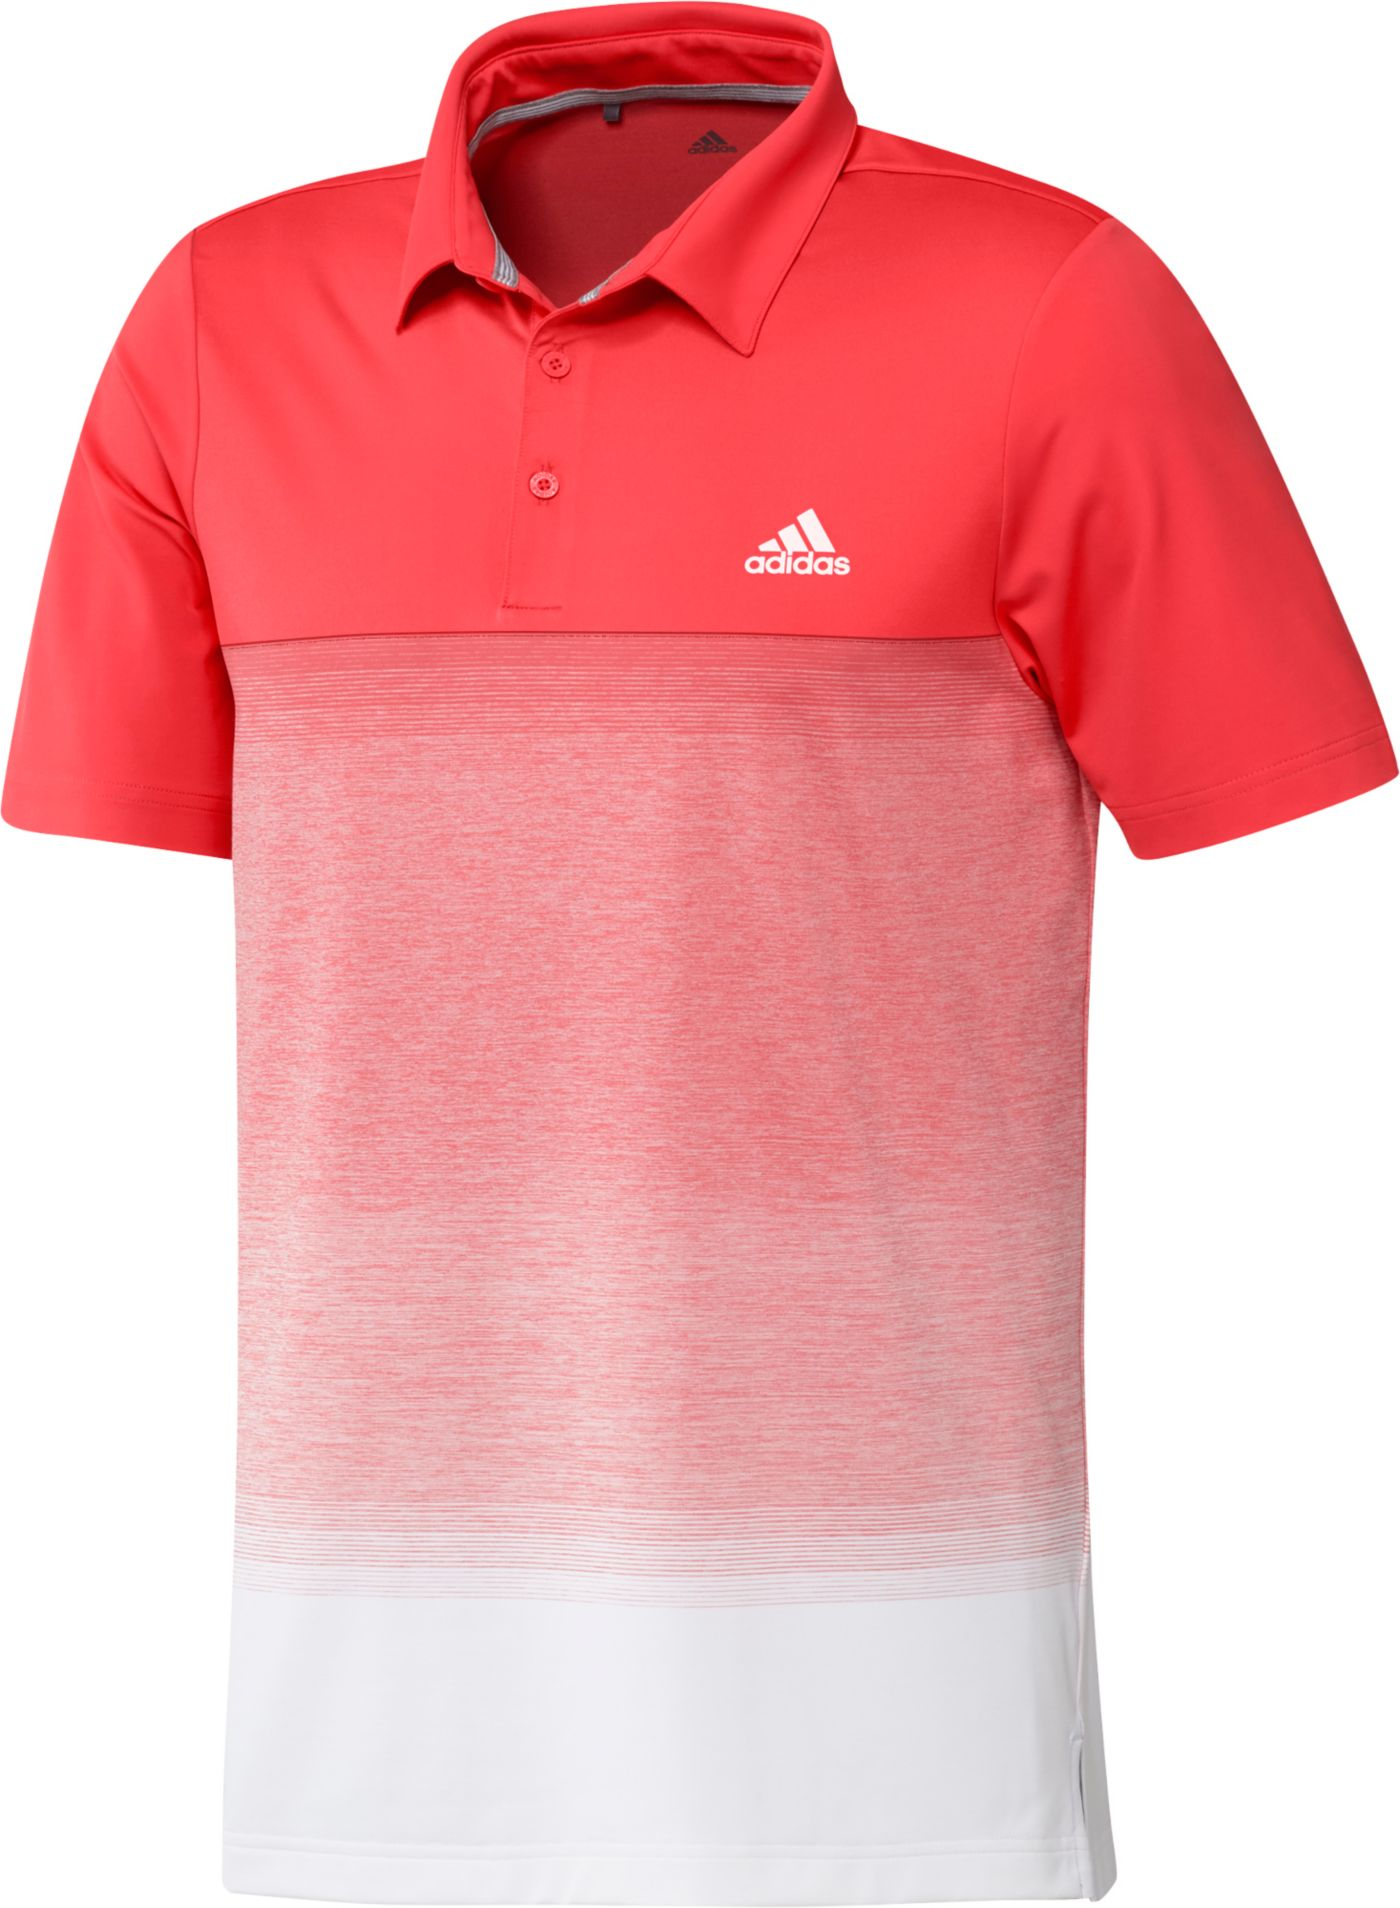 adidas Men's Ultimate365 1.1 Print Golf Polo